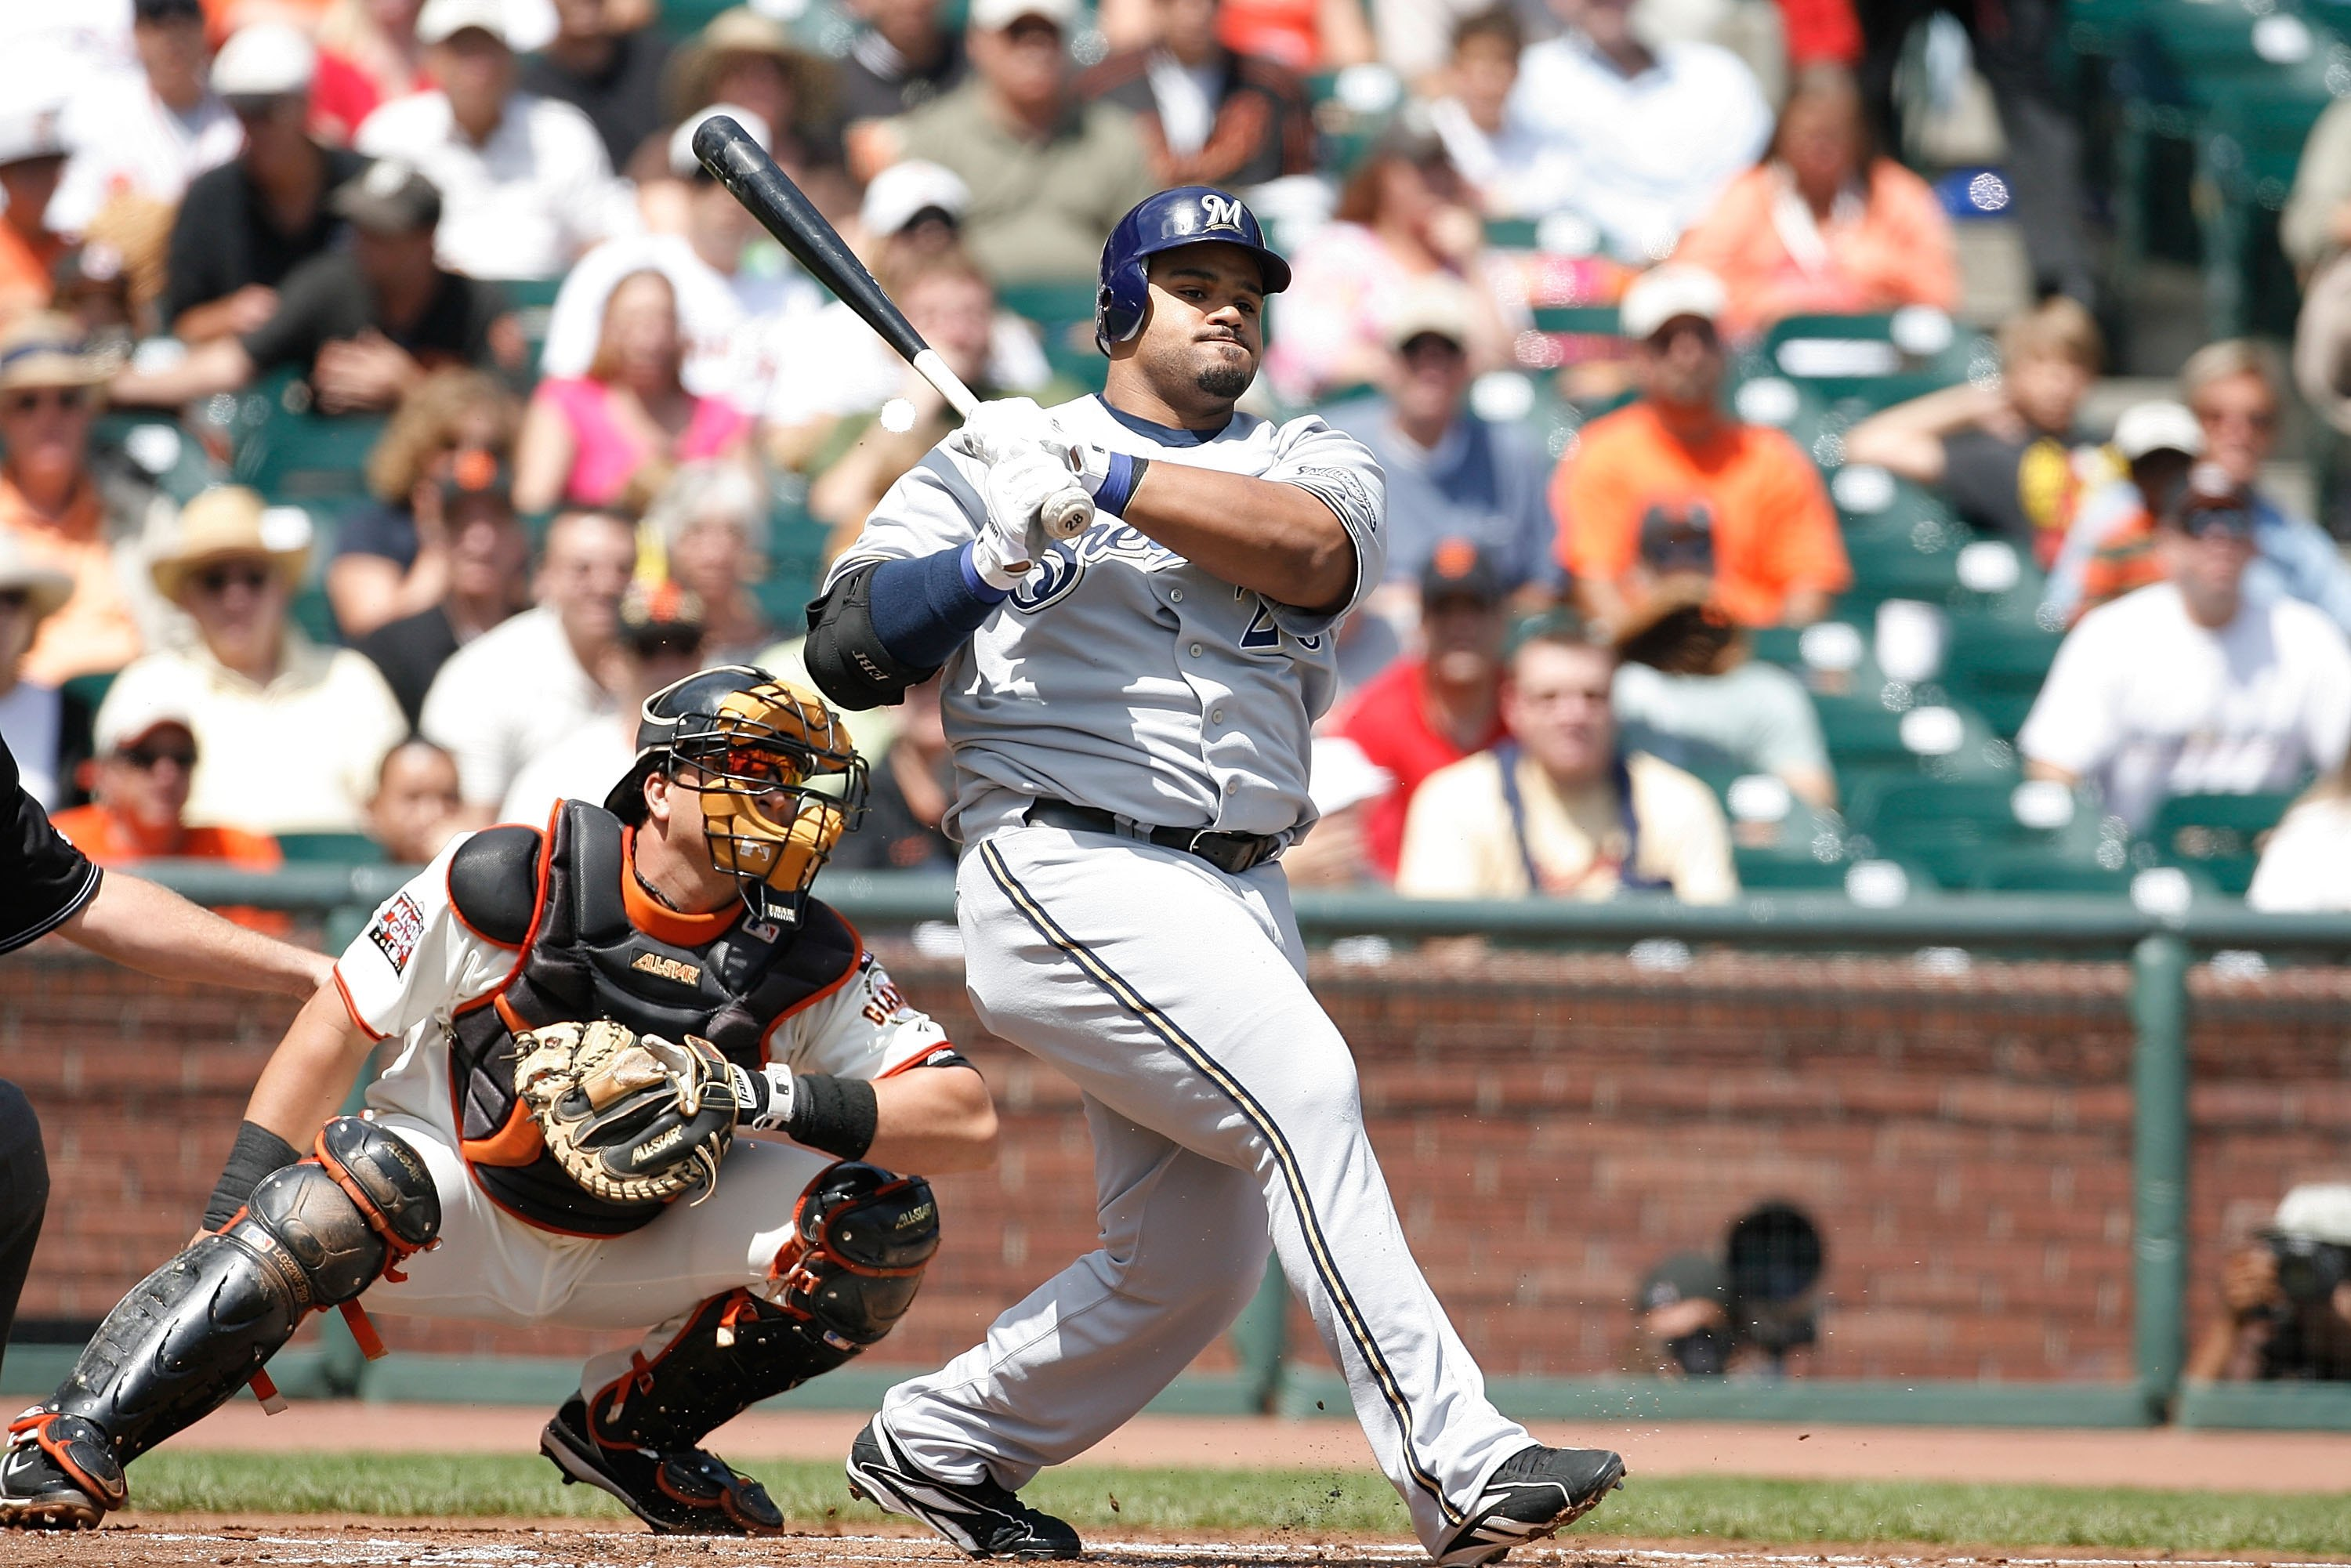 SAN FRANCISCO - AUGUST 26: First baseman Prince Fielder #28 of the Milwaukee Brewers bats during a Major League Baseball game against the San Francisco Giants on August 26, 2007 at AT&T Park in San Francisco, California. (Greg Trott/Getty Images)